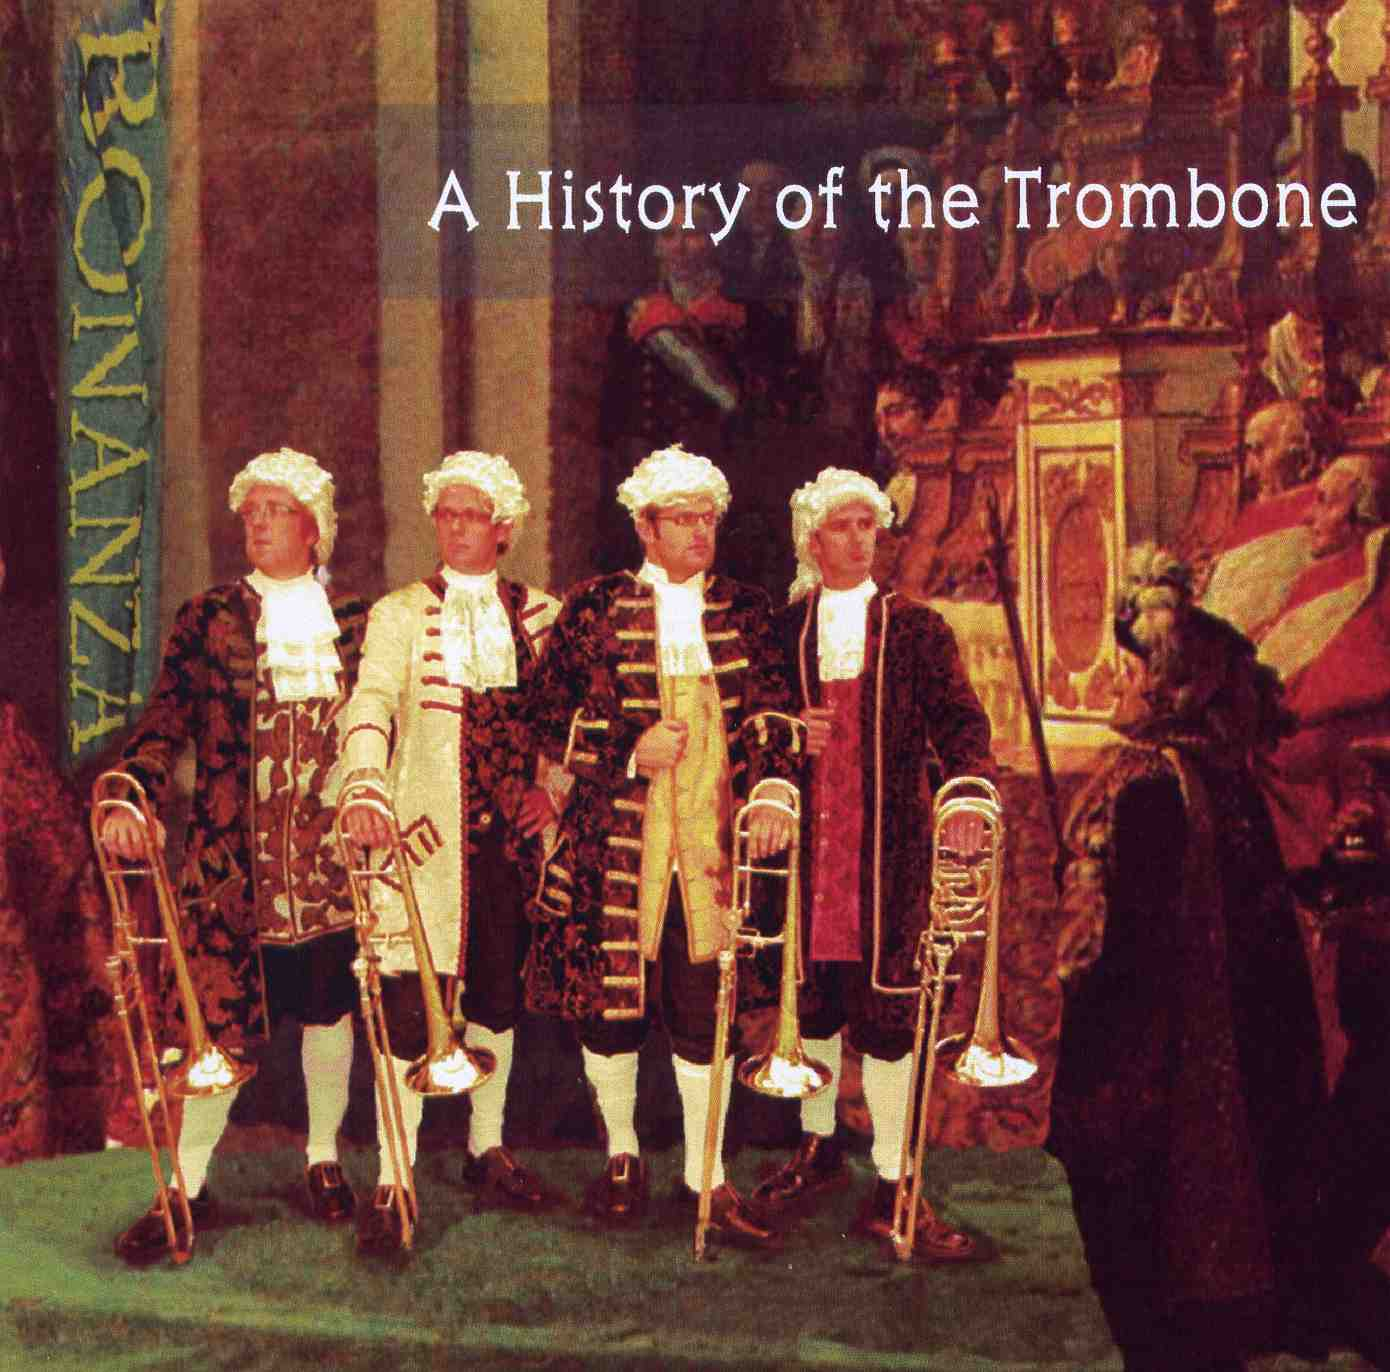 BonaNZa: A History of the Trombone - CD